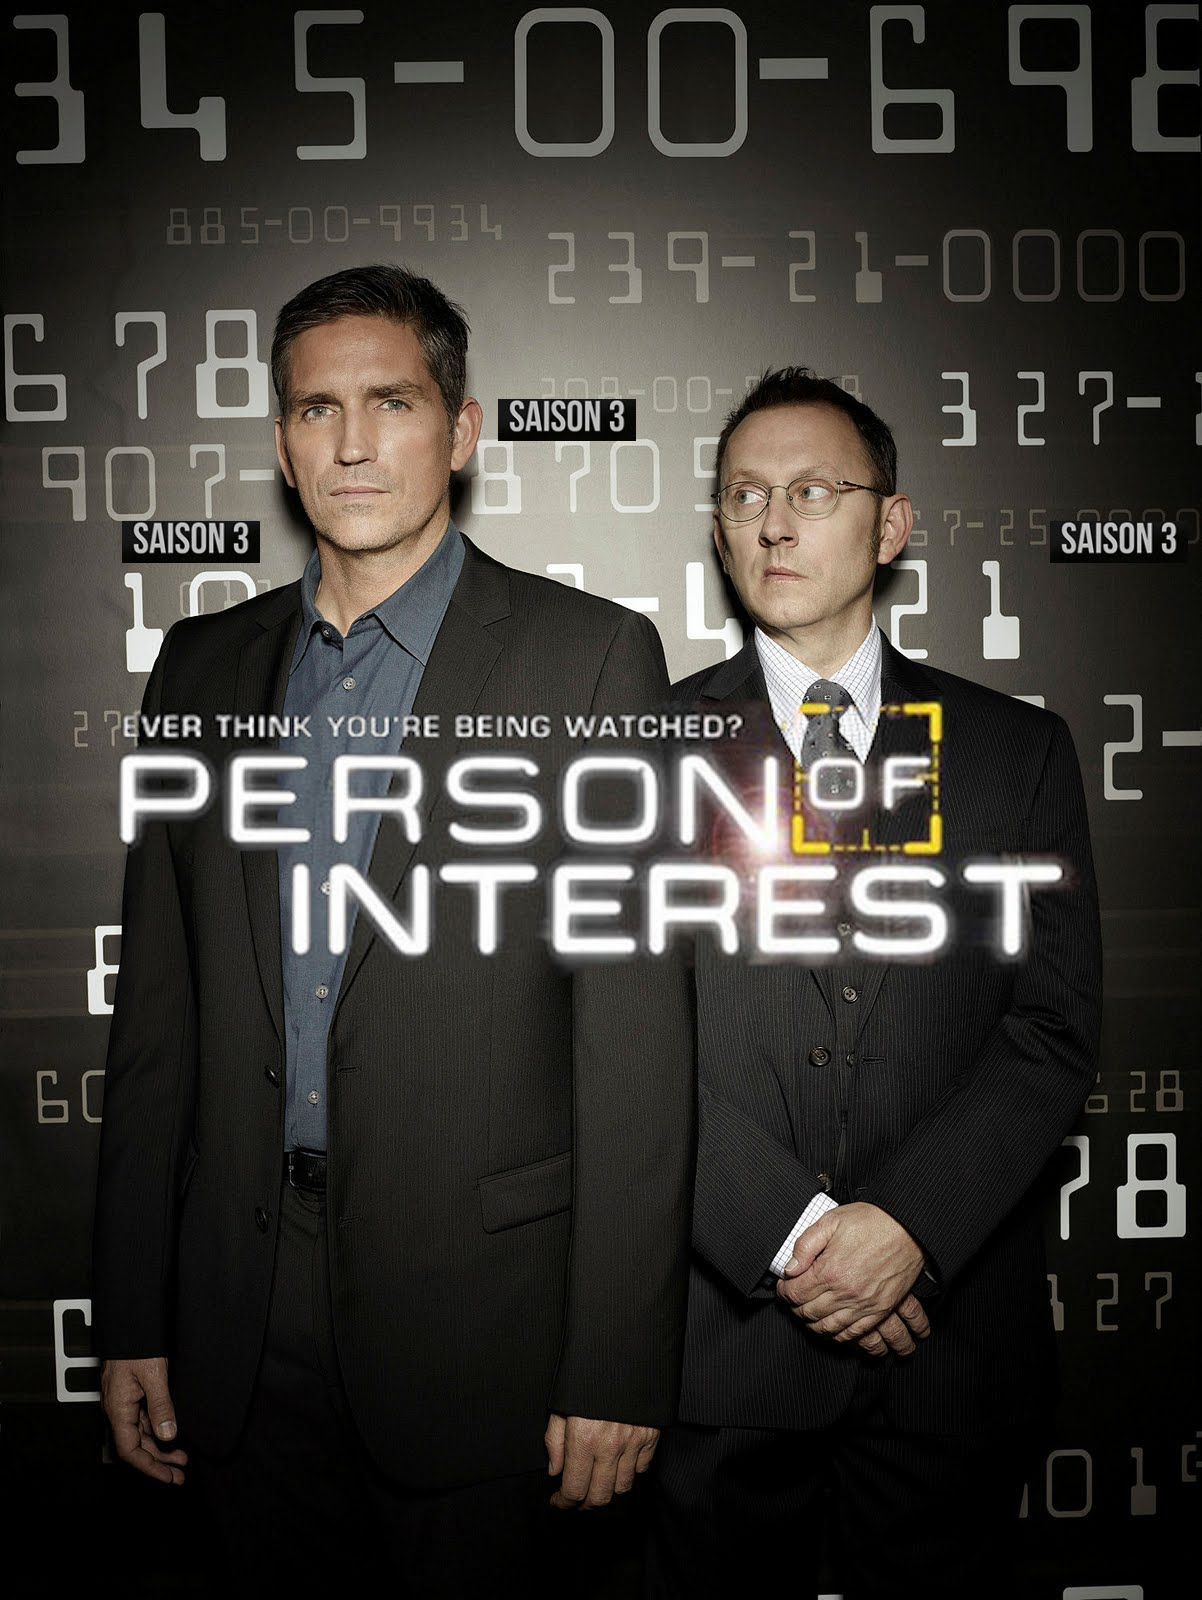 Person of Interest [saison 03] [vostfr] [E01 a 19] HDTV + HD